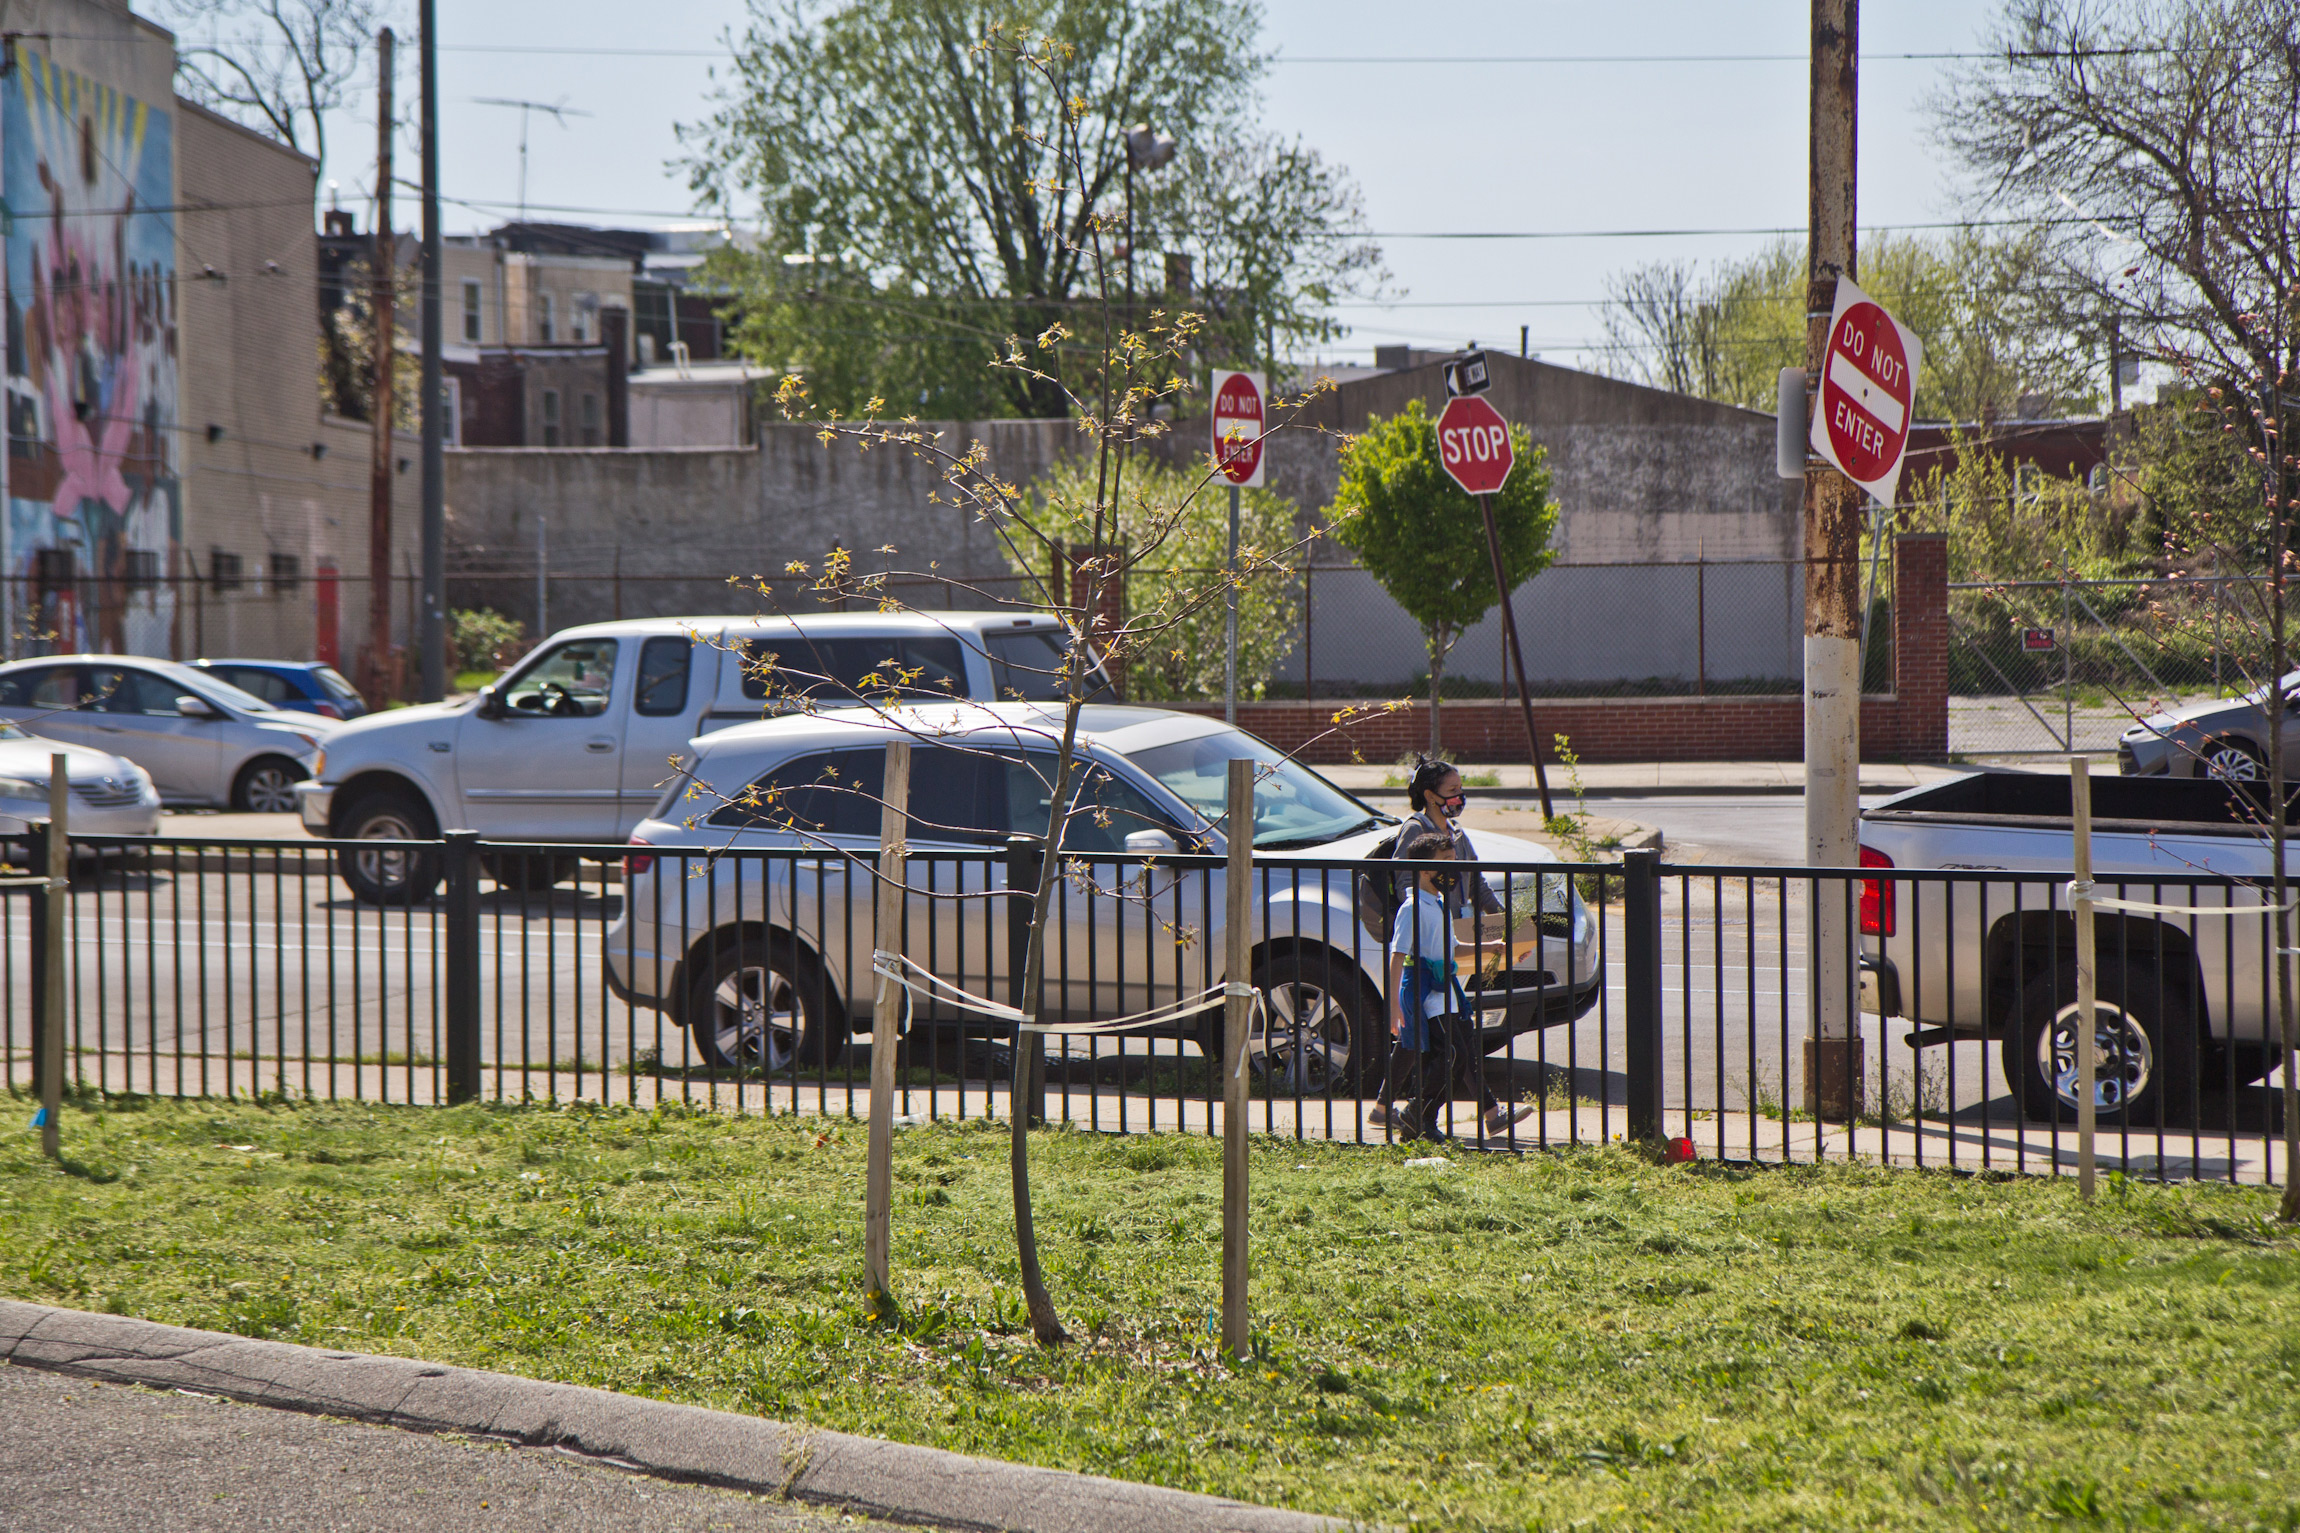 Trees were planted on the grass in front of Mary McLeod Bethune Elementary in the fall of 2020. (Kimberly Paynter/WHYY)